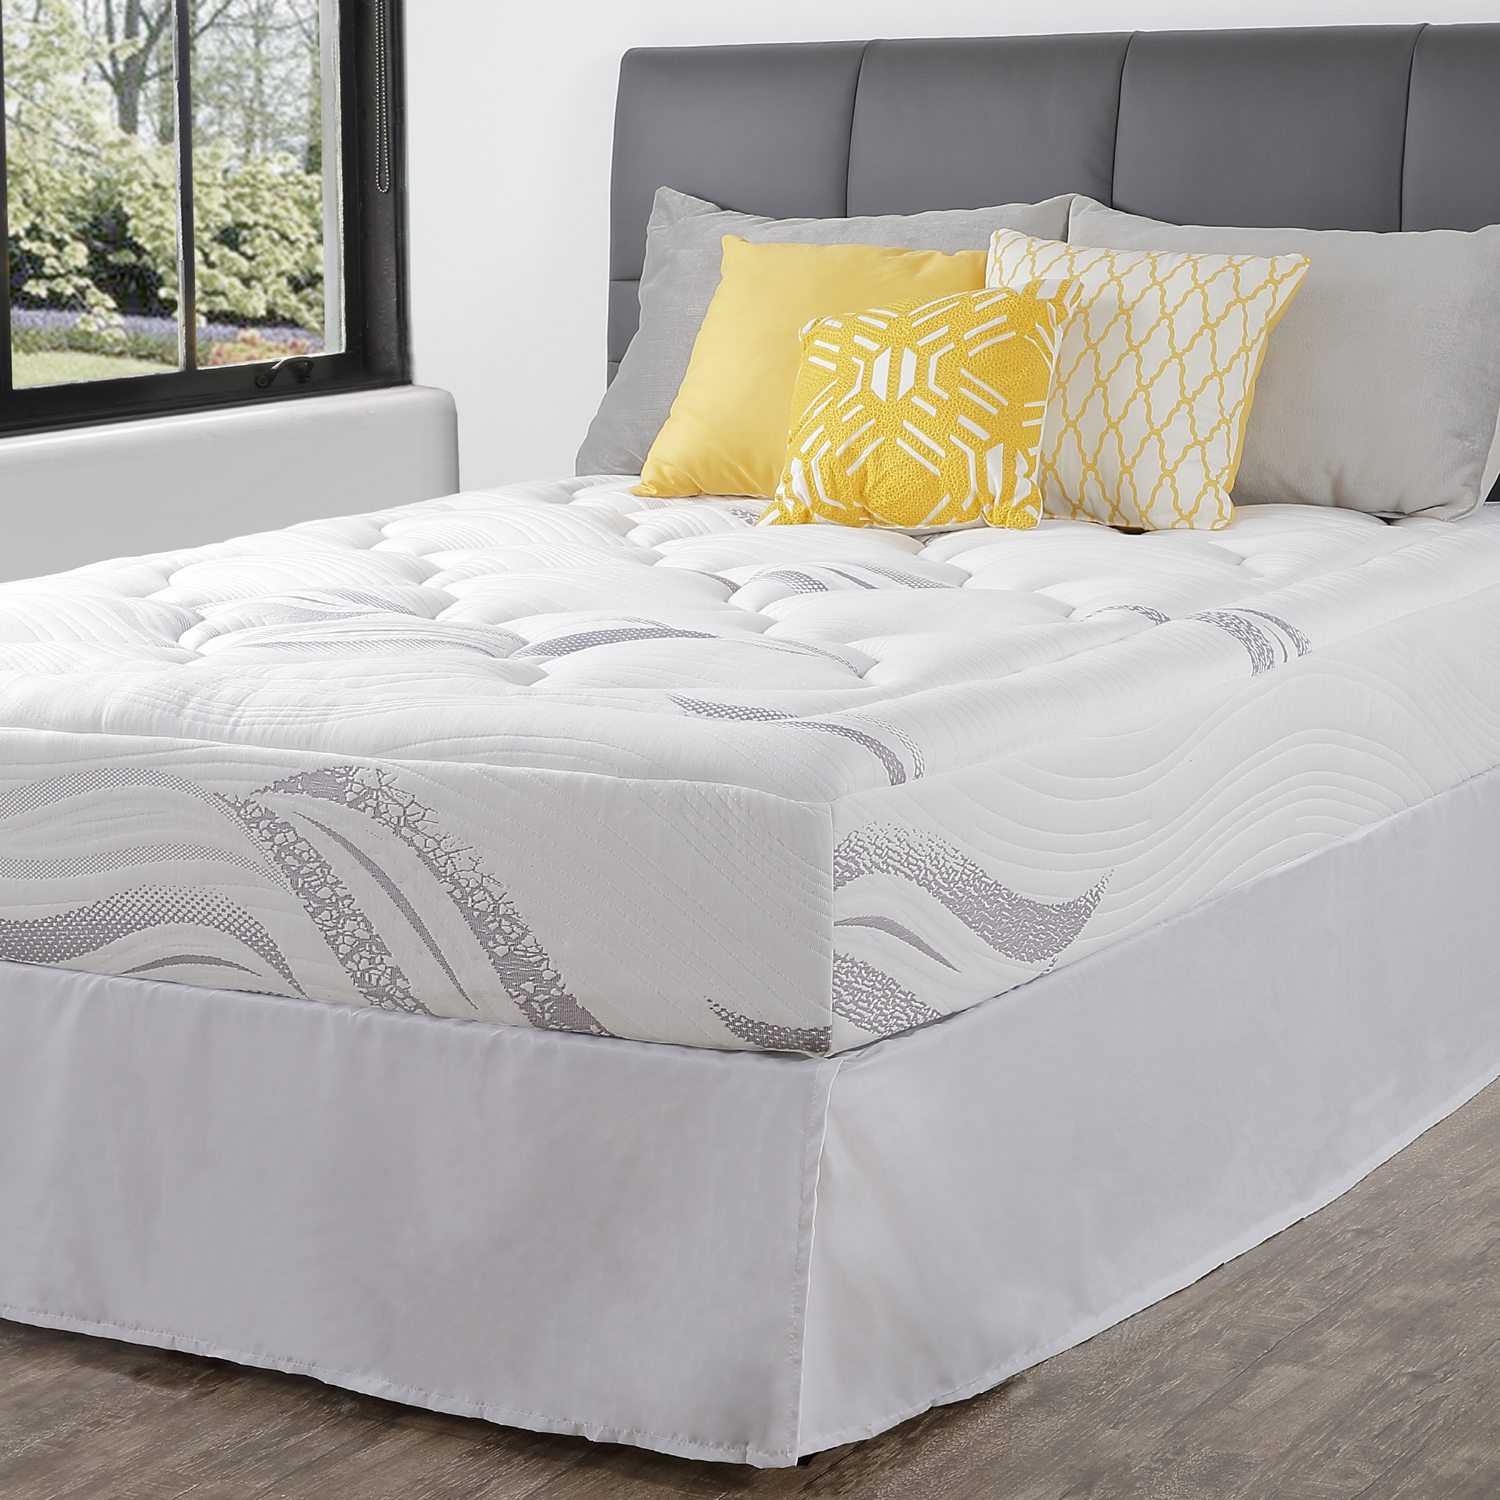 "Spa Sensations 10"" Cloud Memory Foam Mattress, Multiple Sizes"